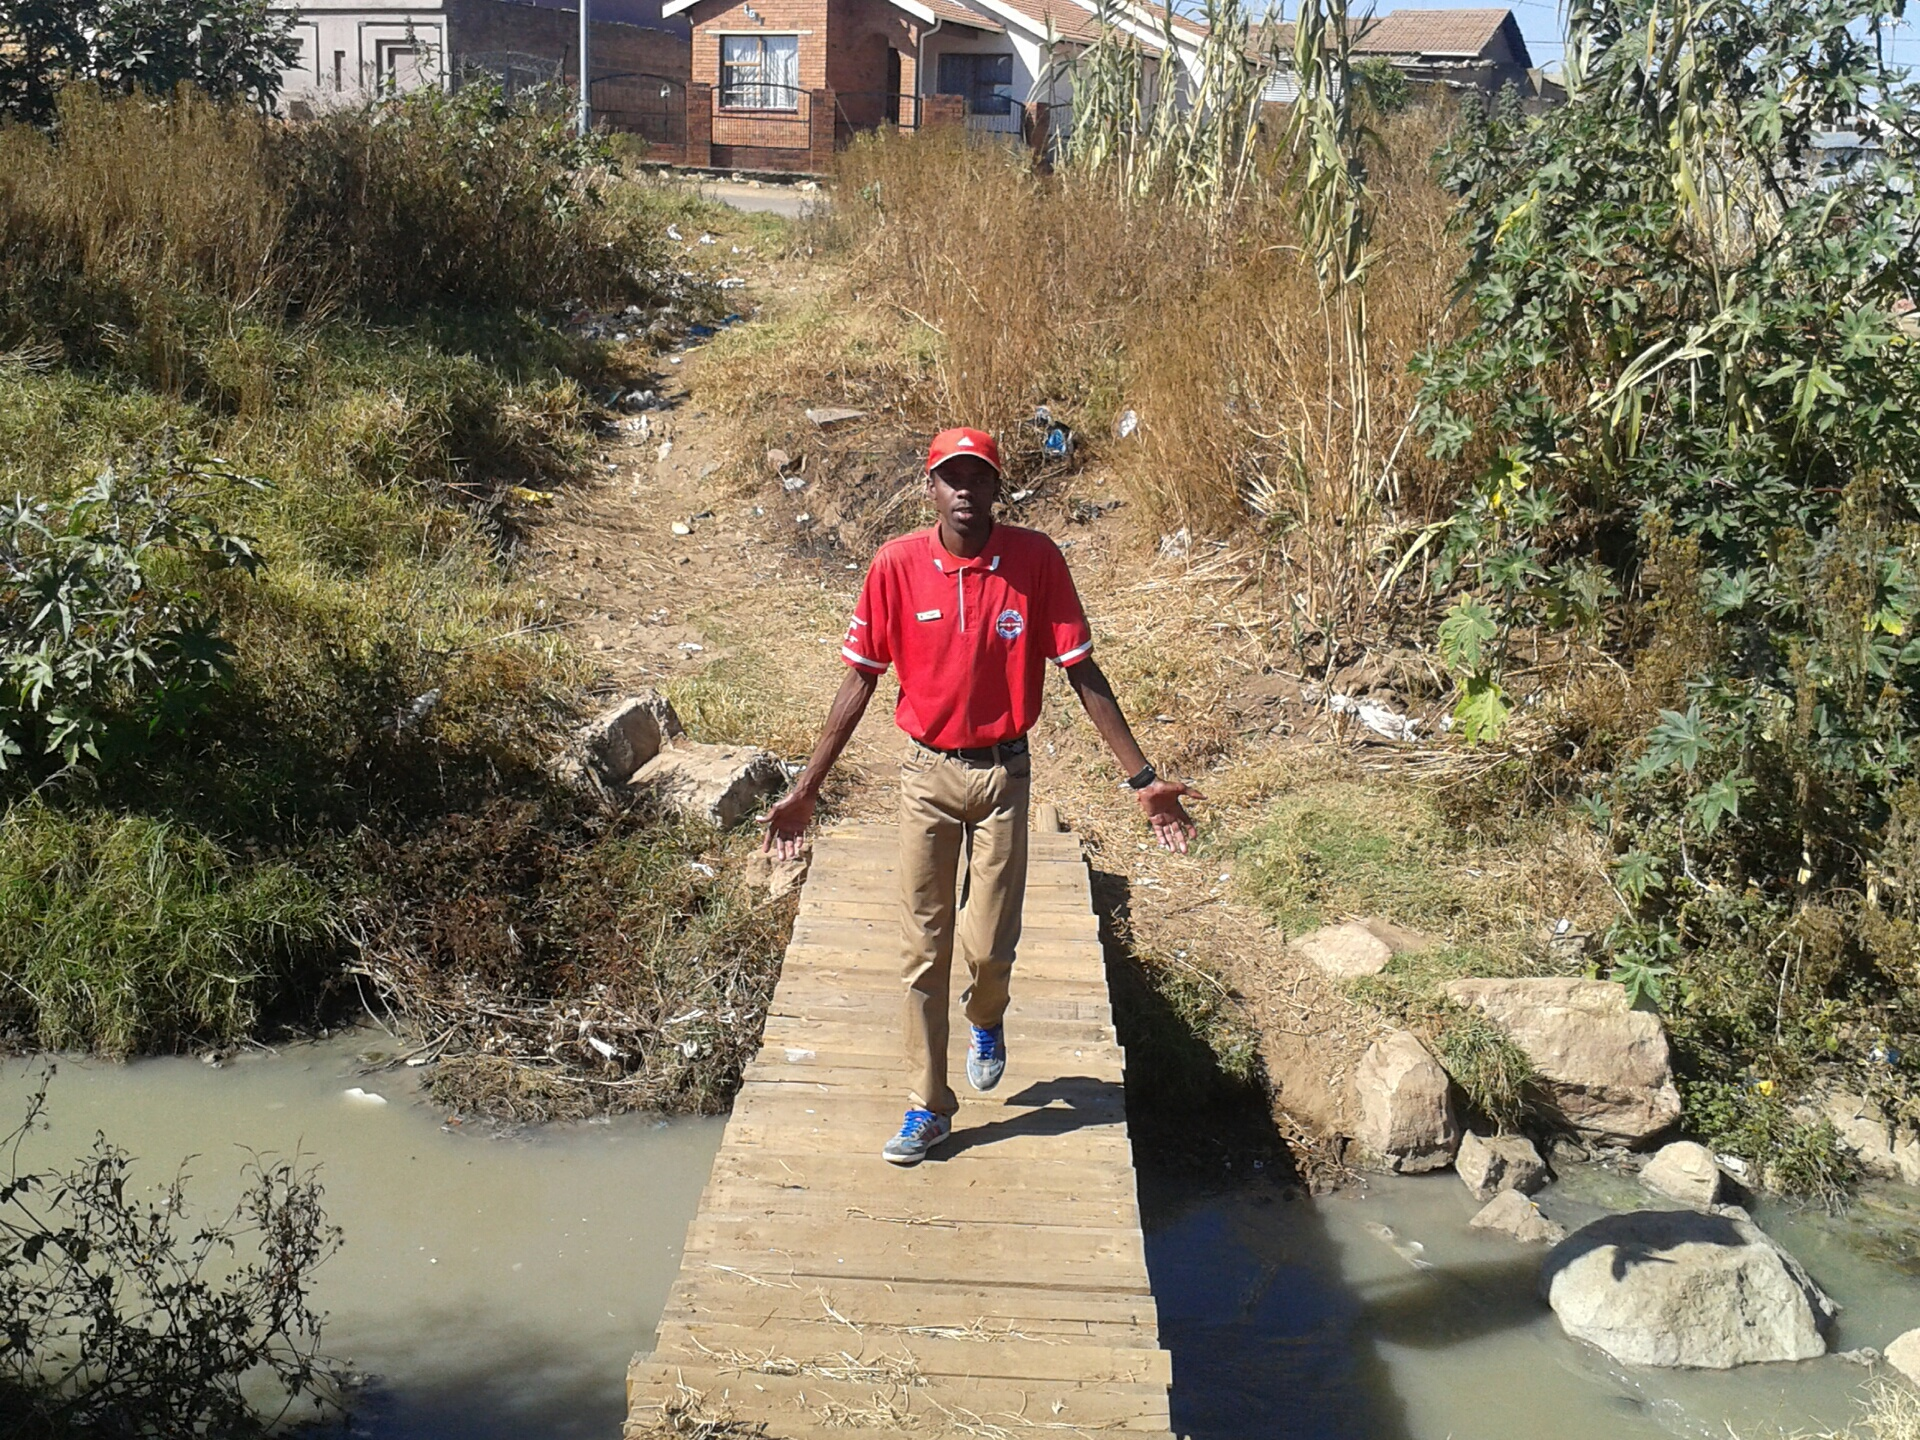 WaterWise Academy's Kenneth Gagela on the bridge built by the community.